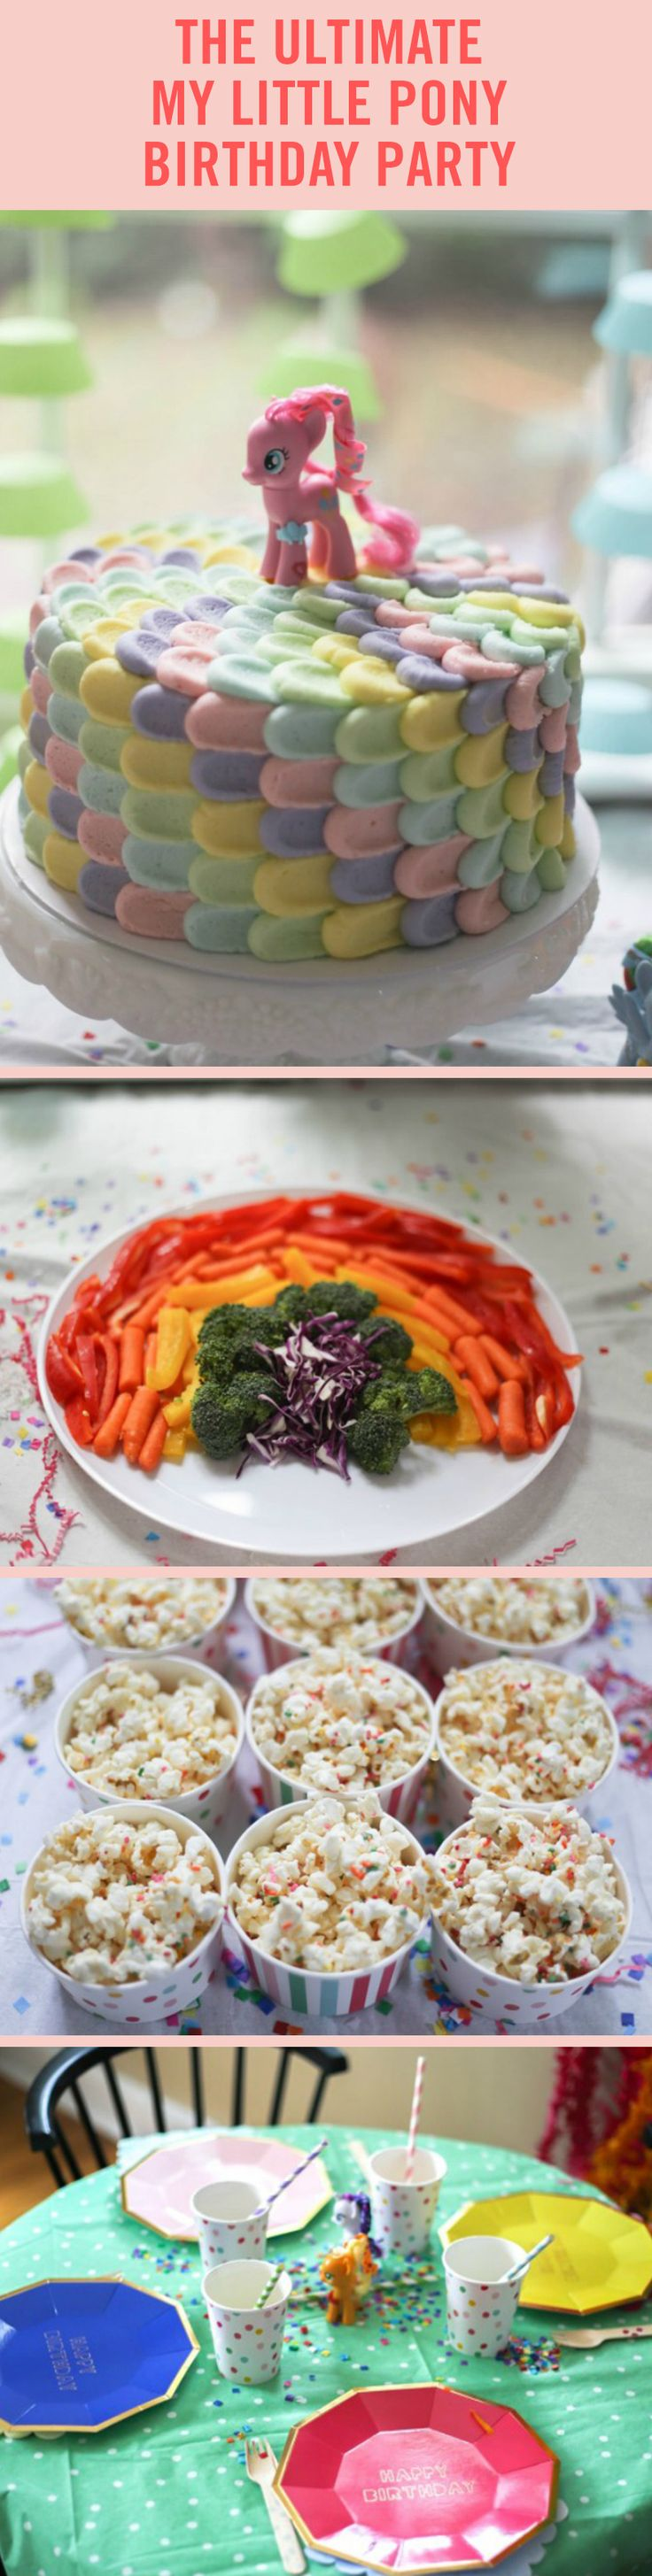 This is the My Little Pony Party of our dreams, so we want to show you how you can throw one for your kids. (The real secret? Rainbow everything.) This DIY party includes rainbow sprinkled popcorn, rainbow frosted pretzels, and even rainbow veggie platters -- as well as all of the rainbow decor you could possibly imagine.